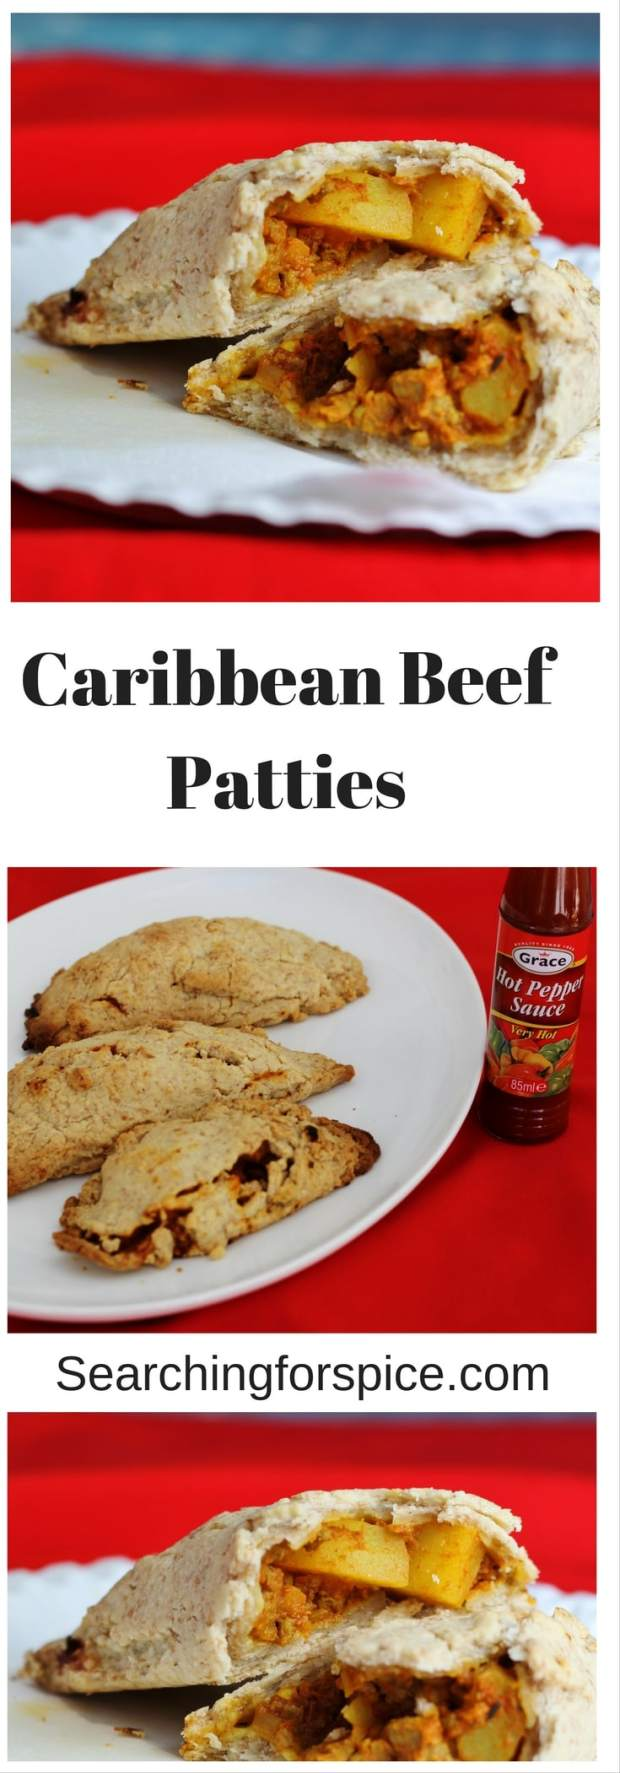 Caribbean Beef Patties for Caribbean Food Week 2016 - Searching for ...